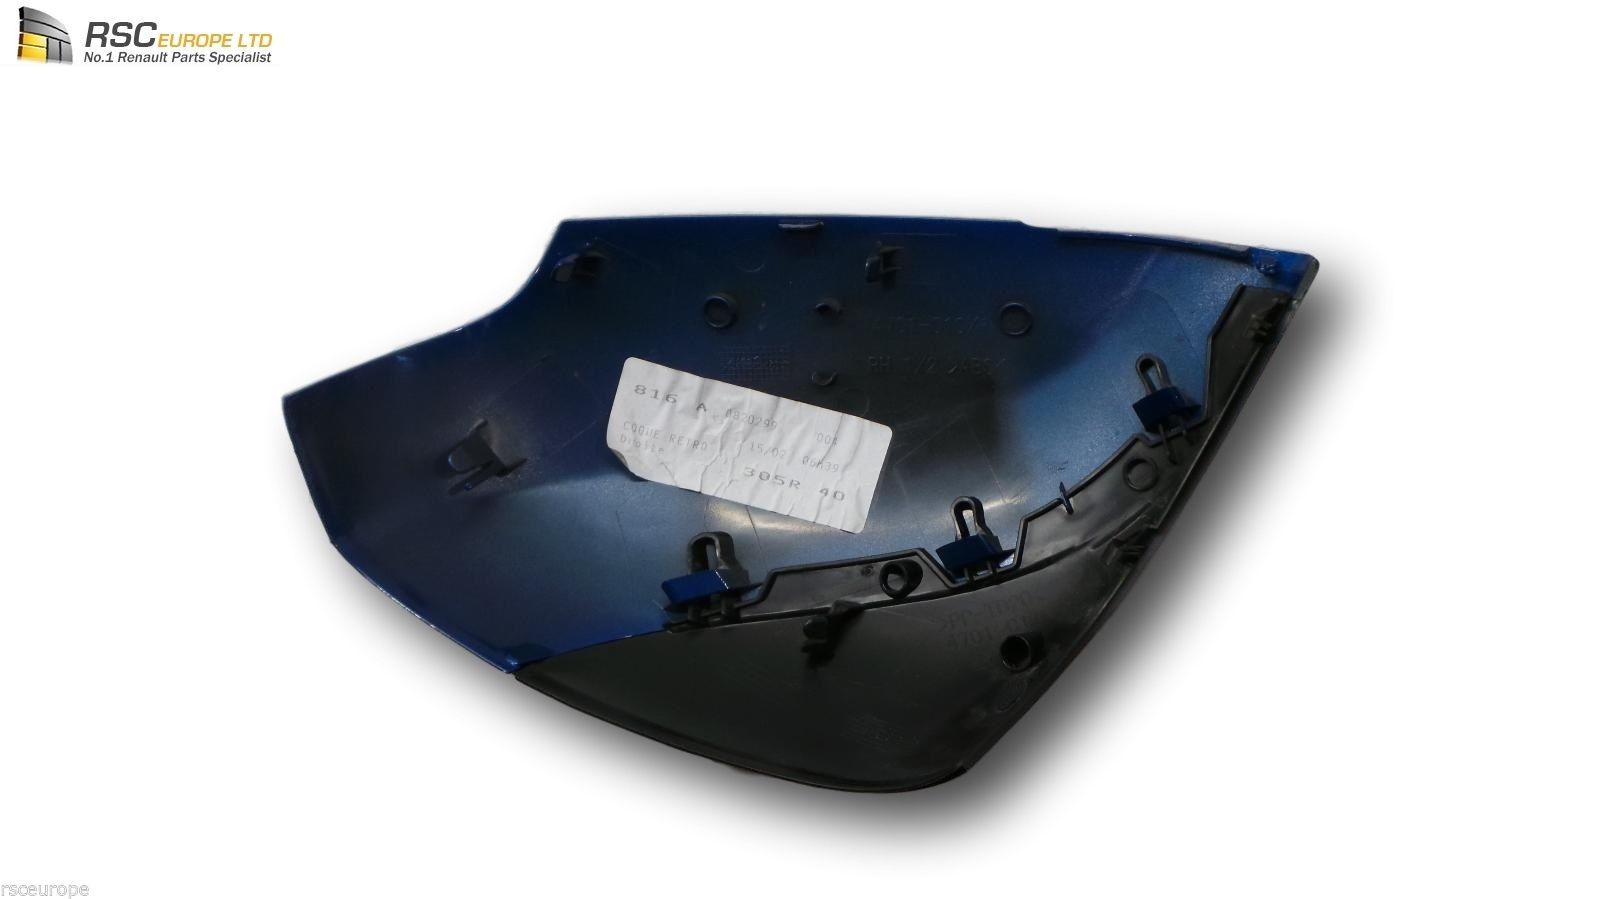 renault scenic 3 iii right mirror cover cap shell in blue os 963748223r. Black Bedroom Furniture Sets. Home Design Ideas